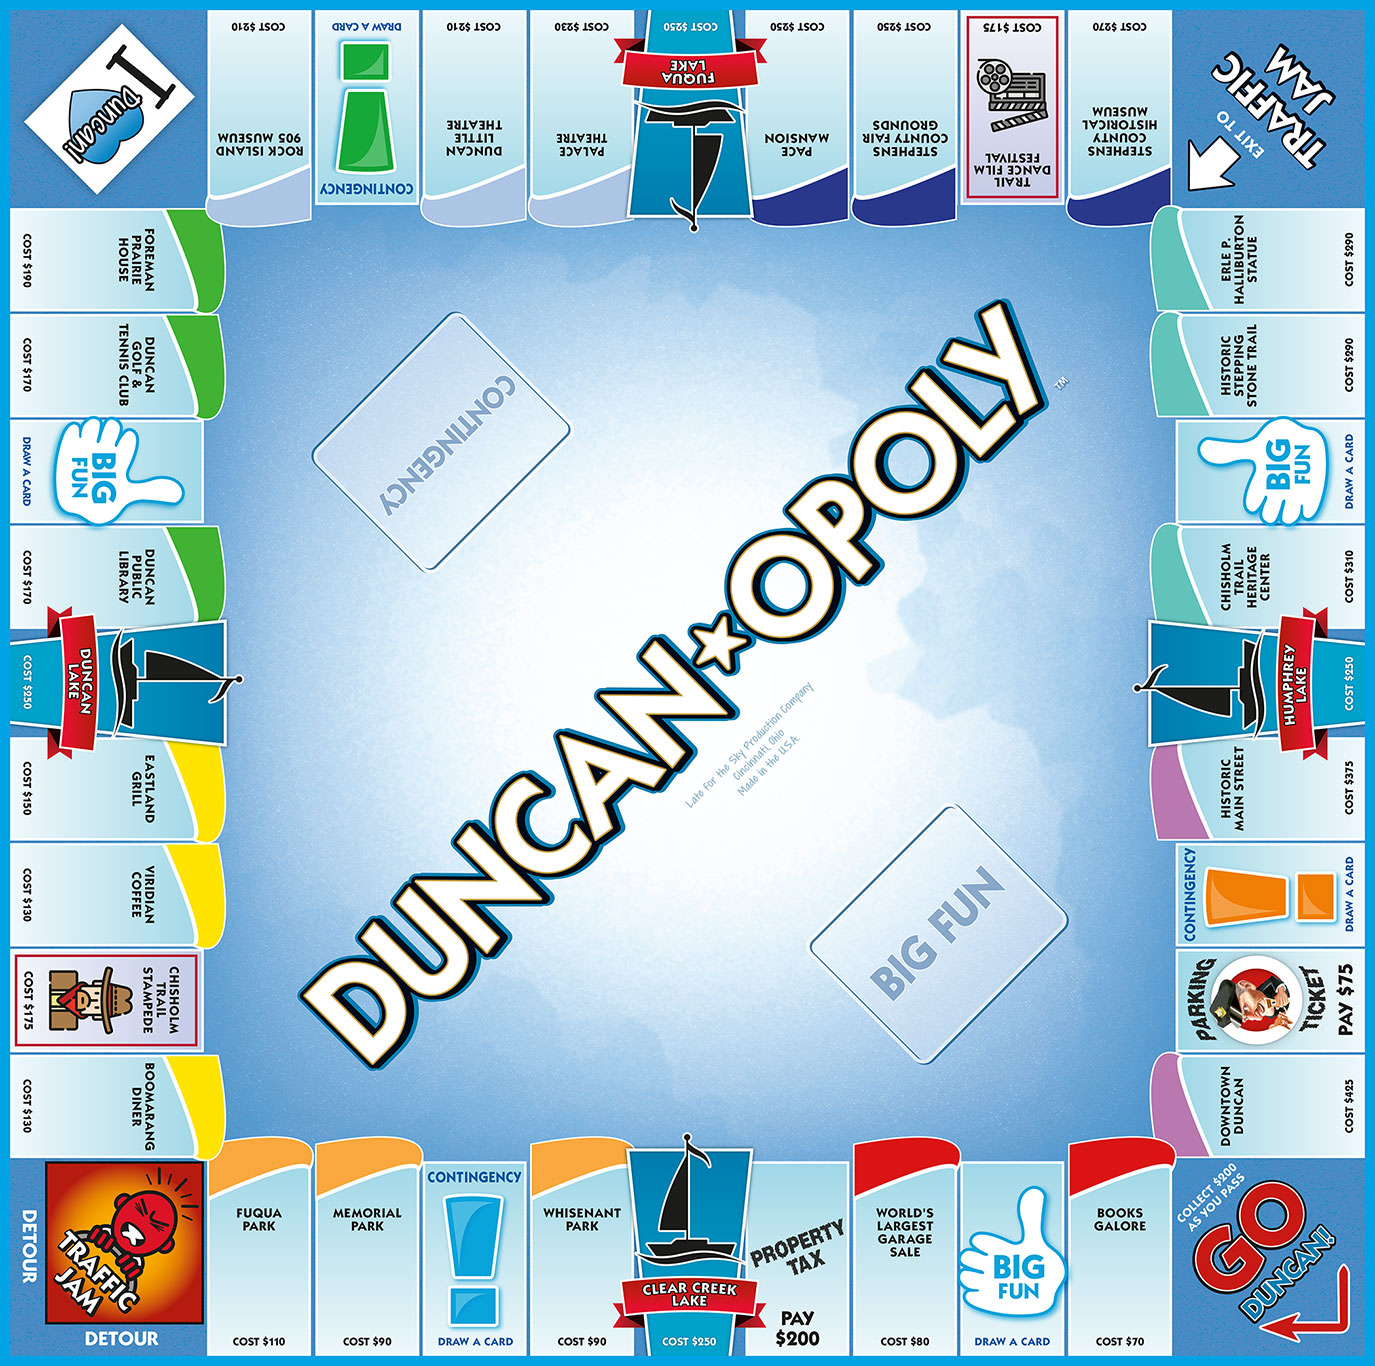 DUNCAN-OPOLY Board Game